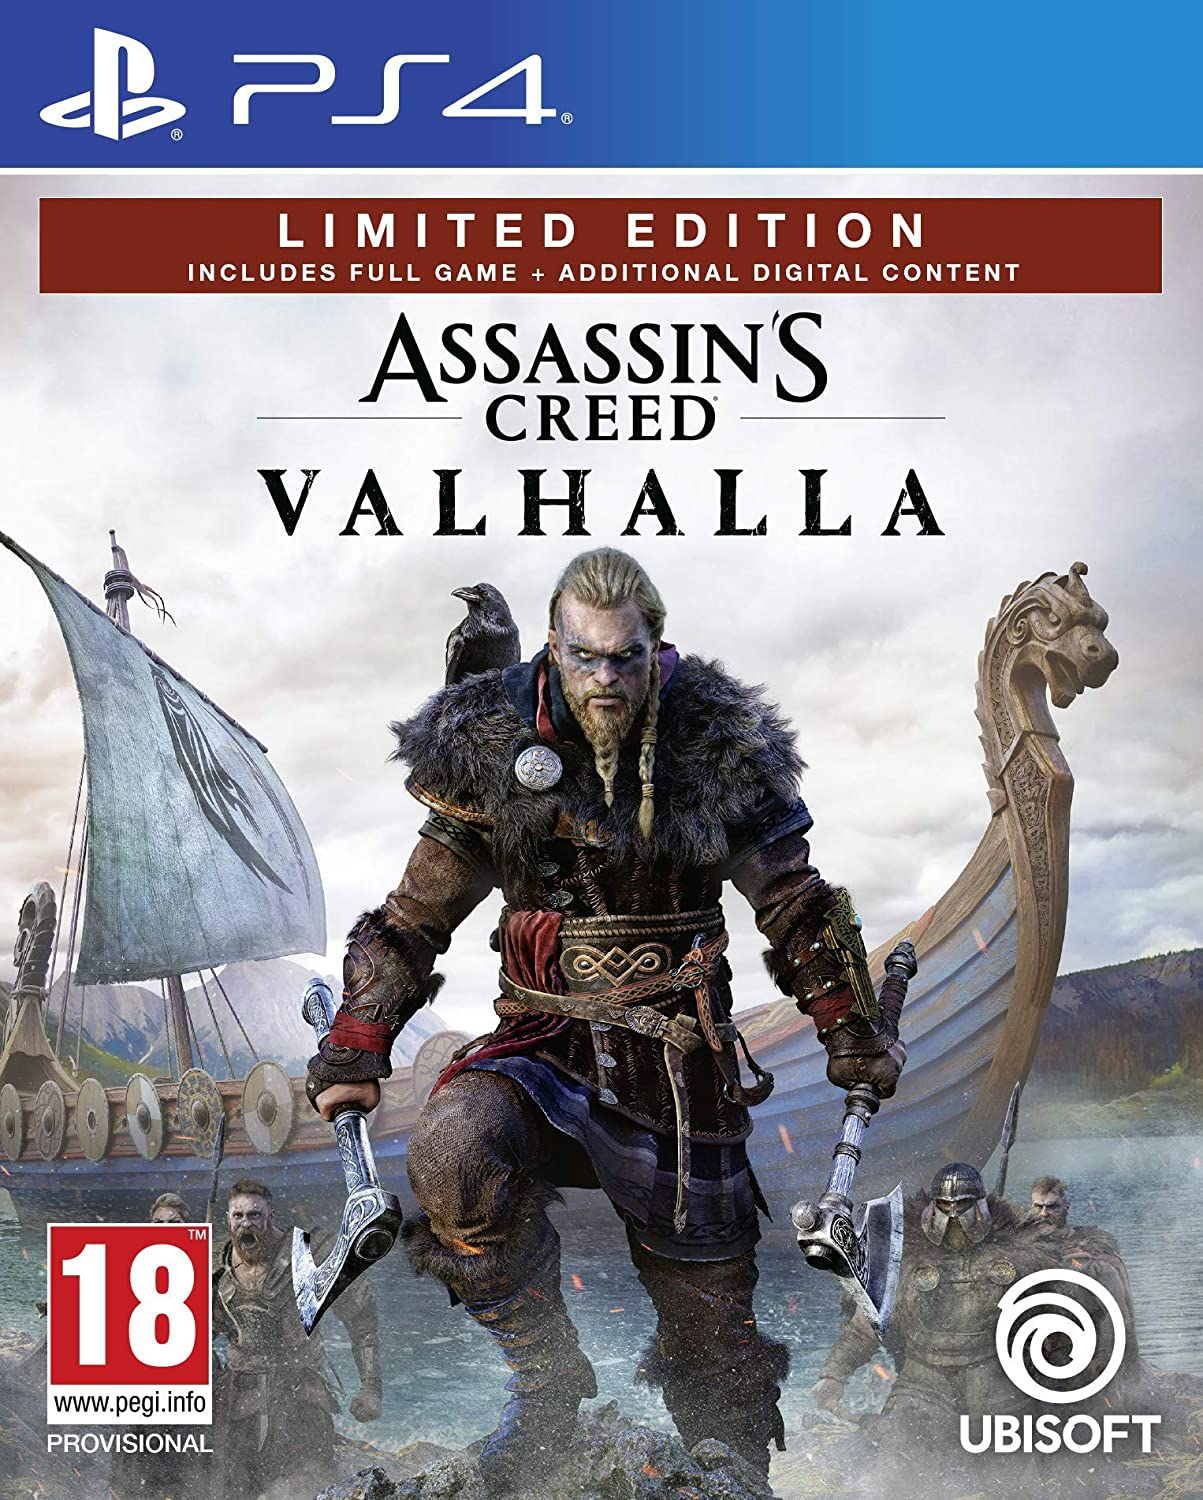 Assassin's Creed Valhalla (Ubisoft)